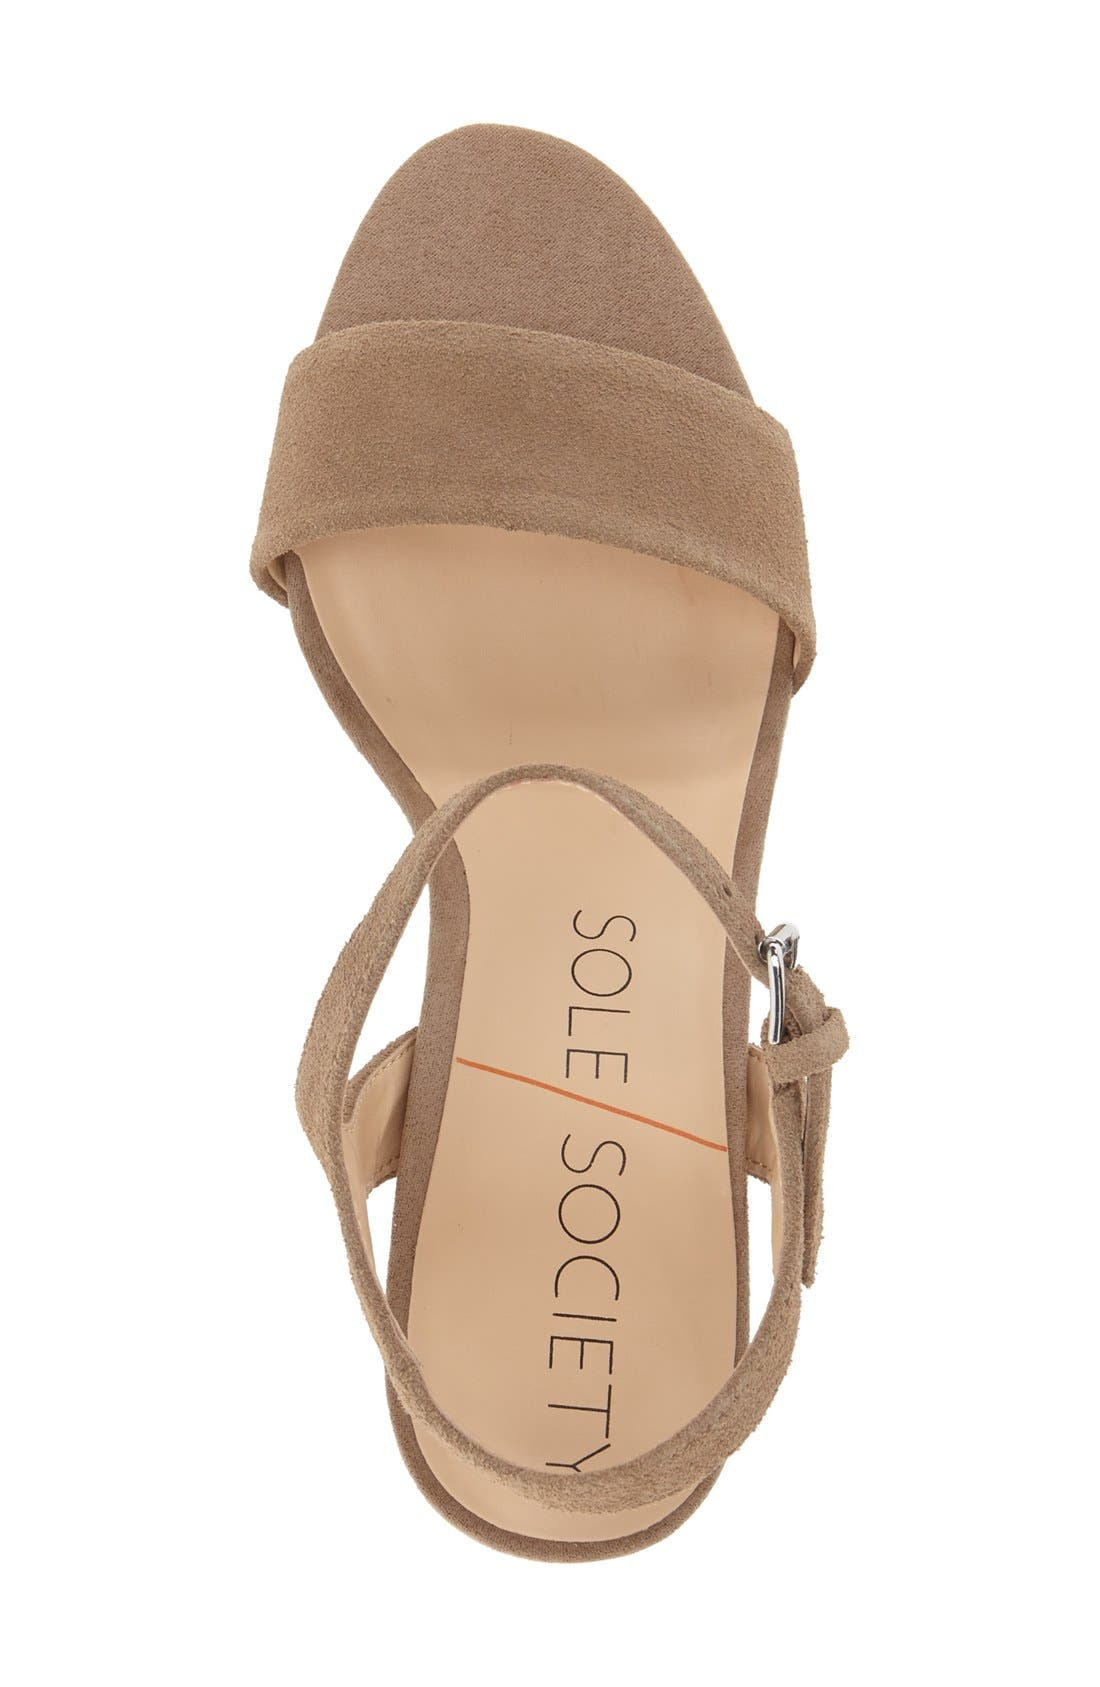 Alternate Image 3  - Sole Society 'Linny' Ankle Strap Sandal (Women)